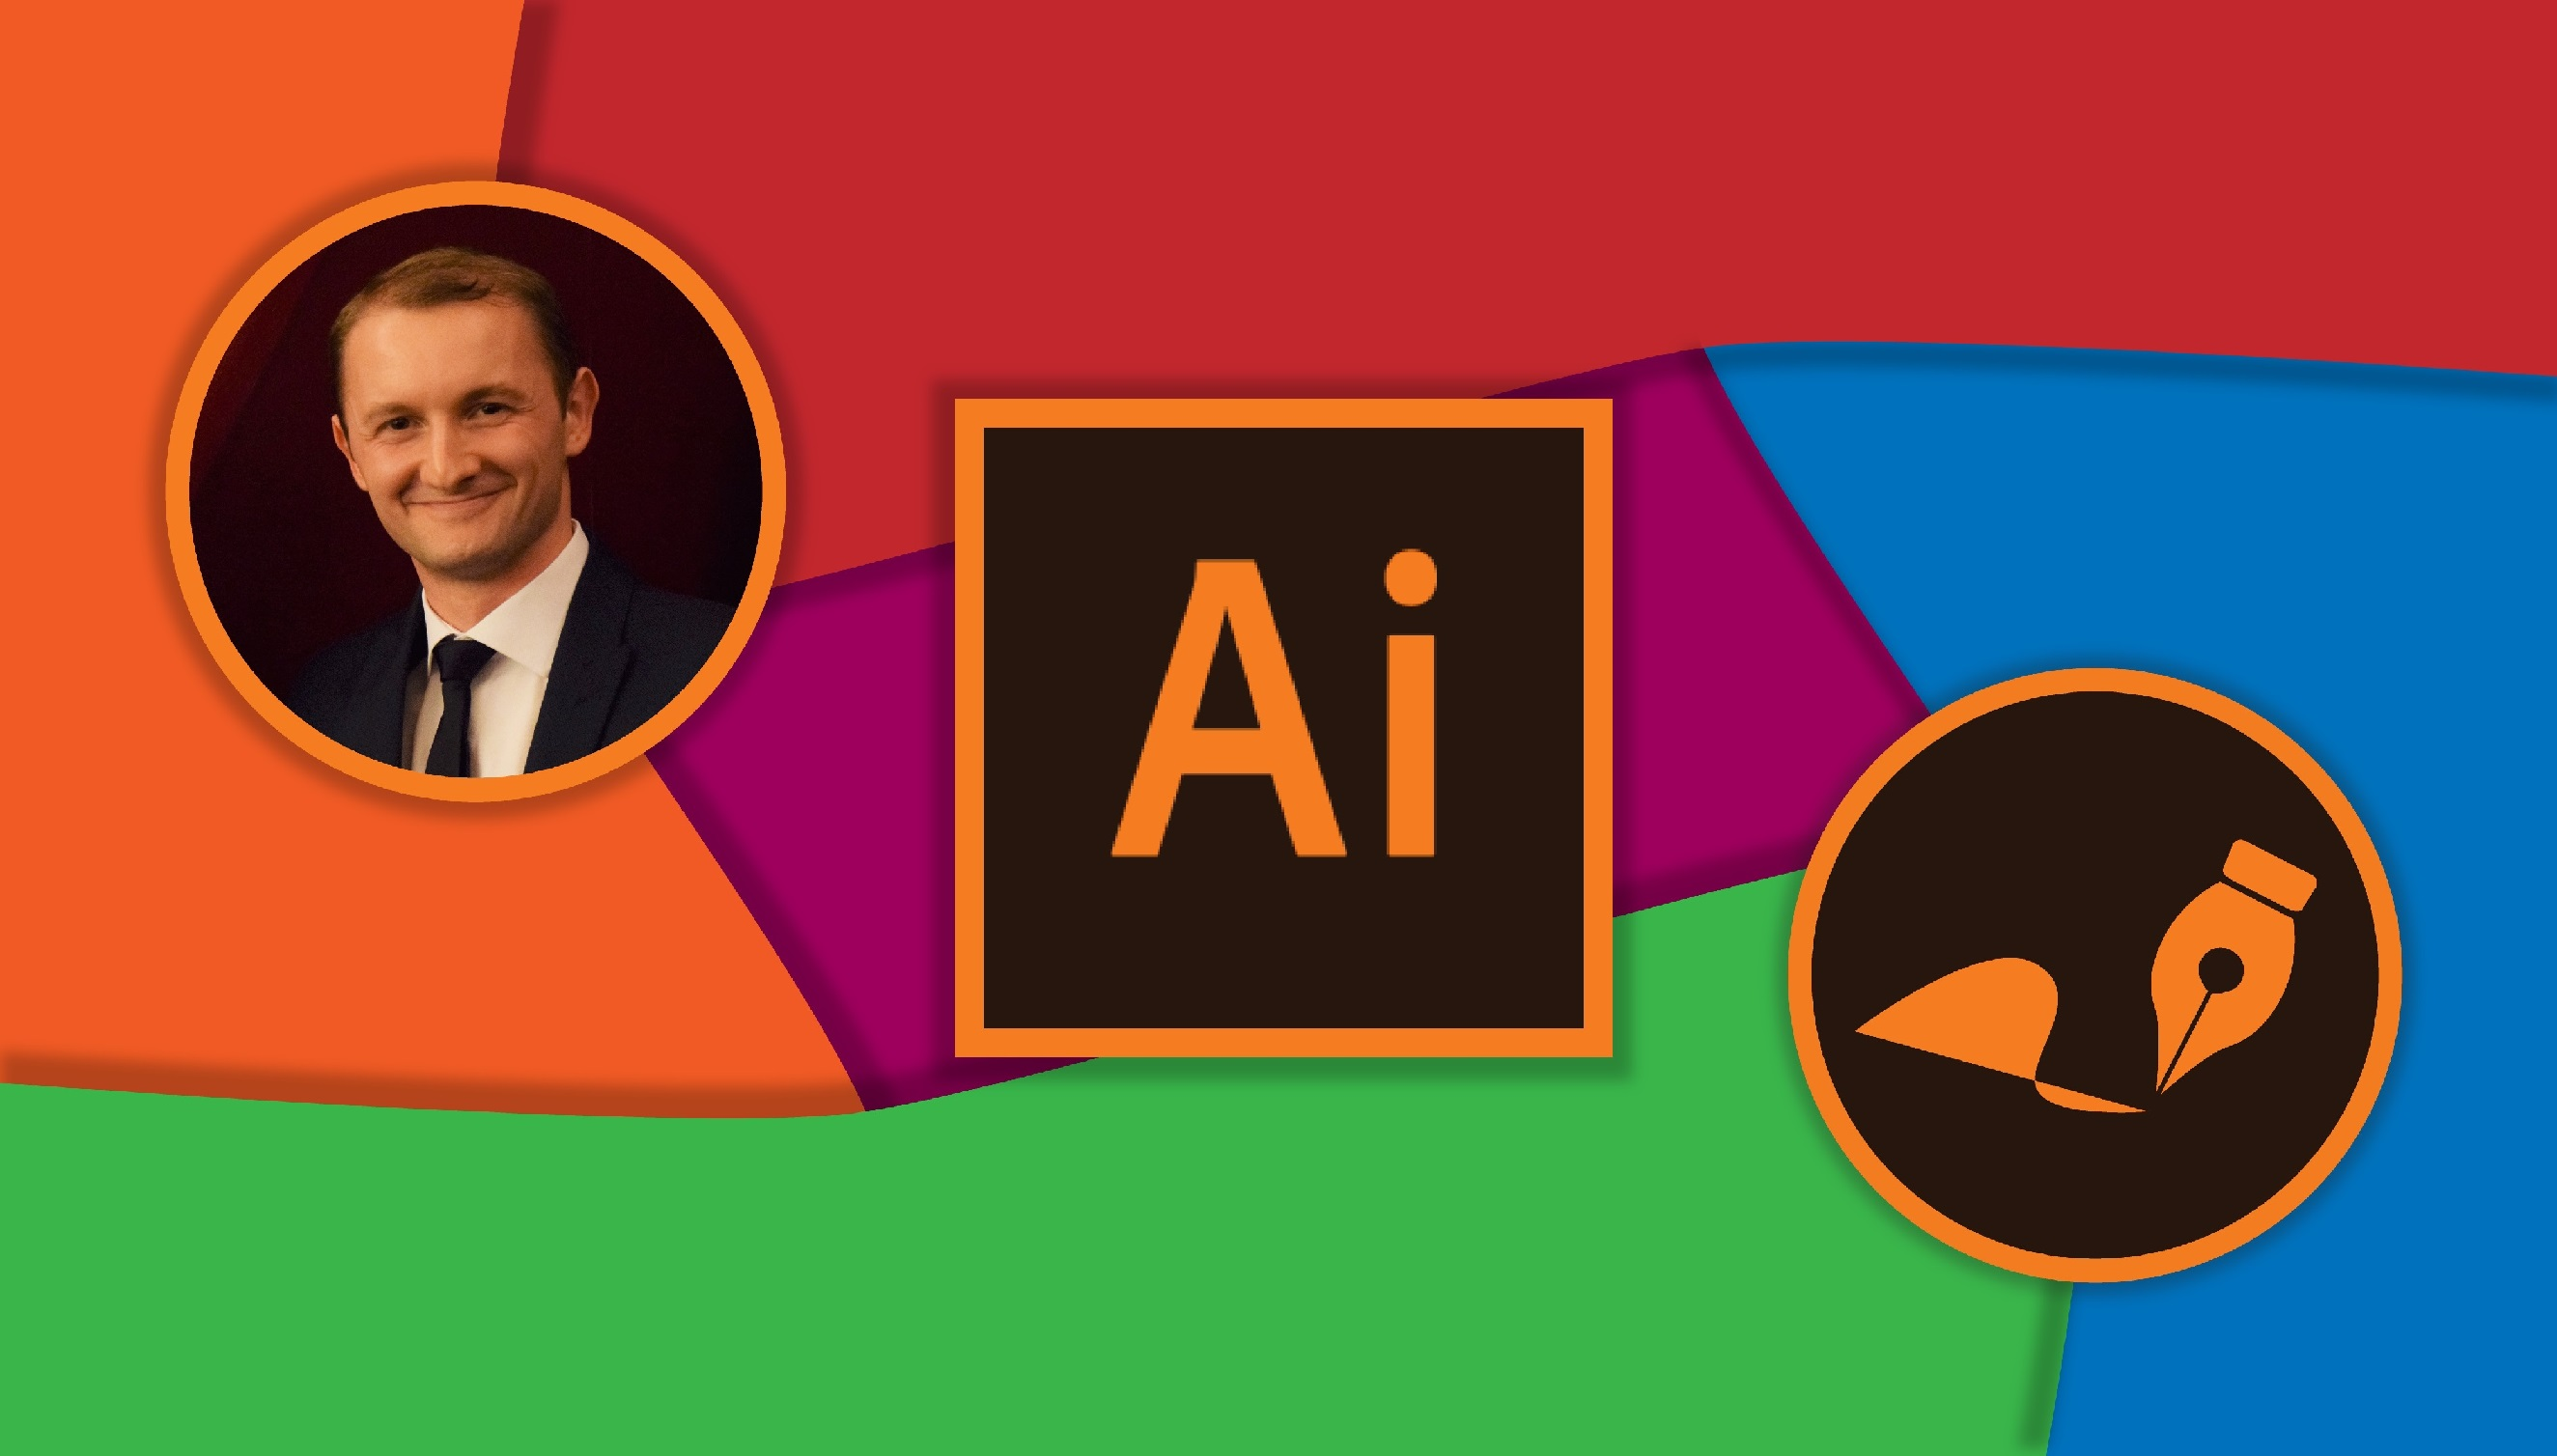 Adobe Illustrator: A 100% Practical Art & Design Course